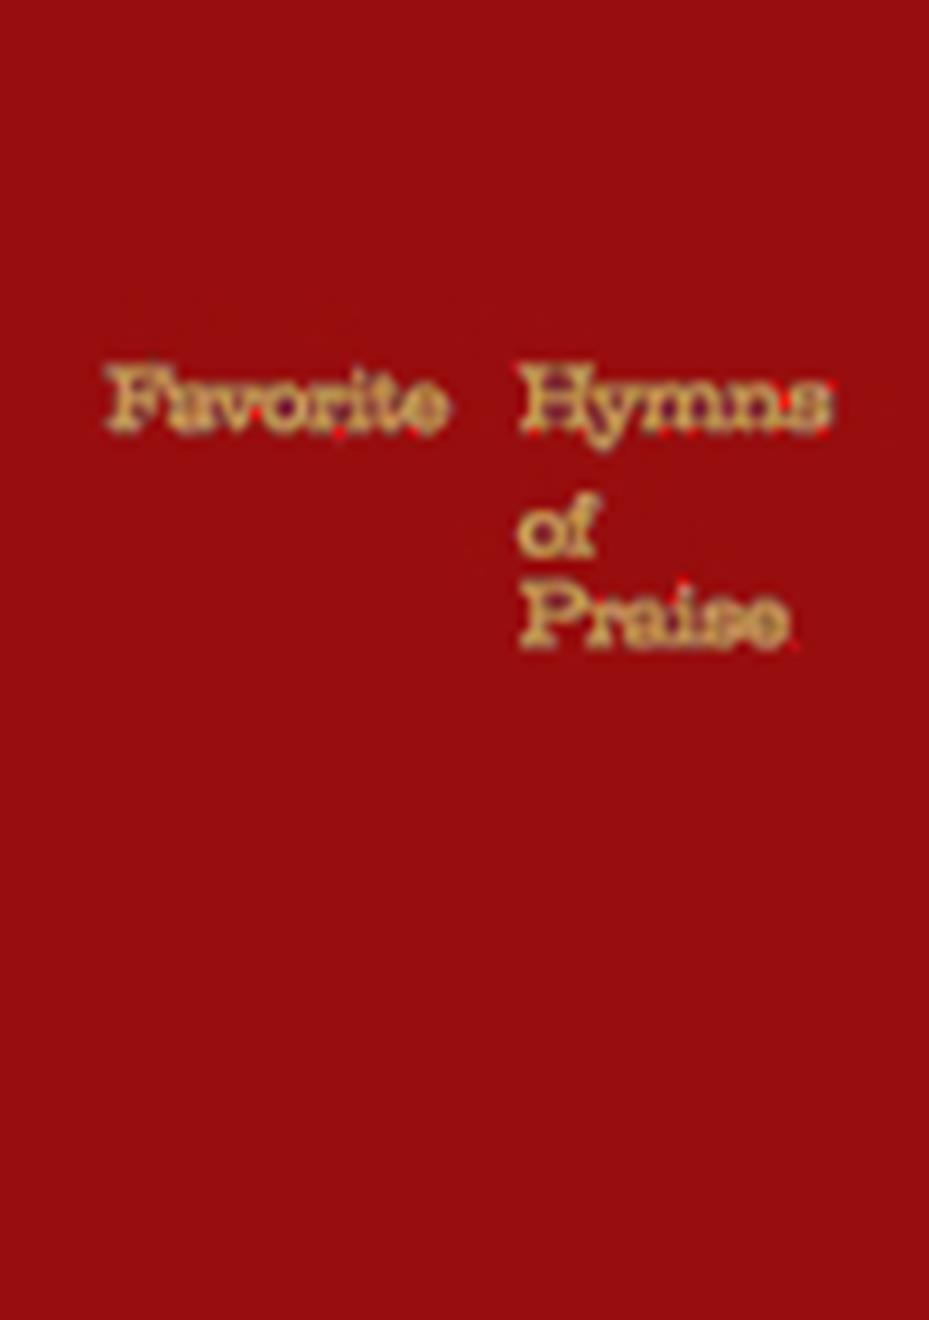 Favorite Hymns of Praise - Red Cover Image